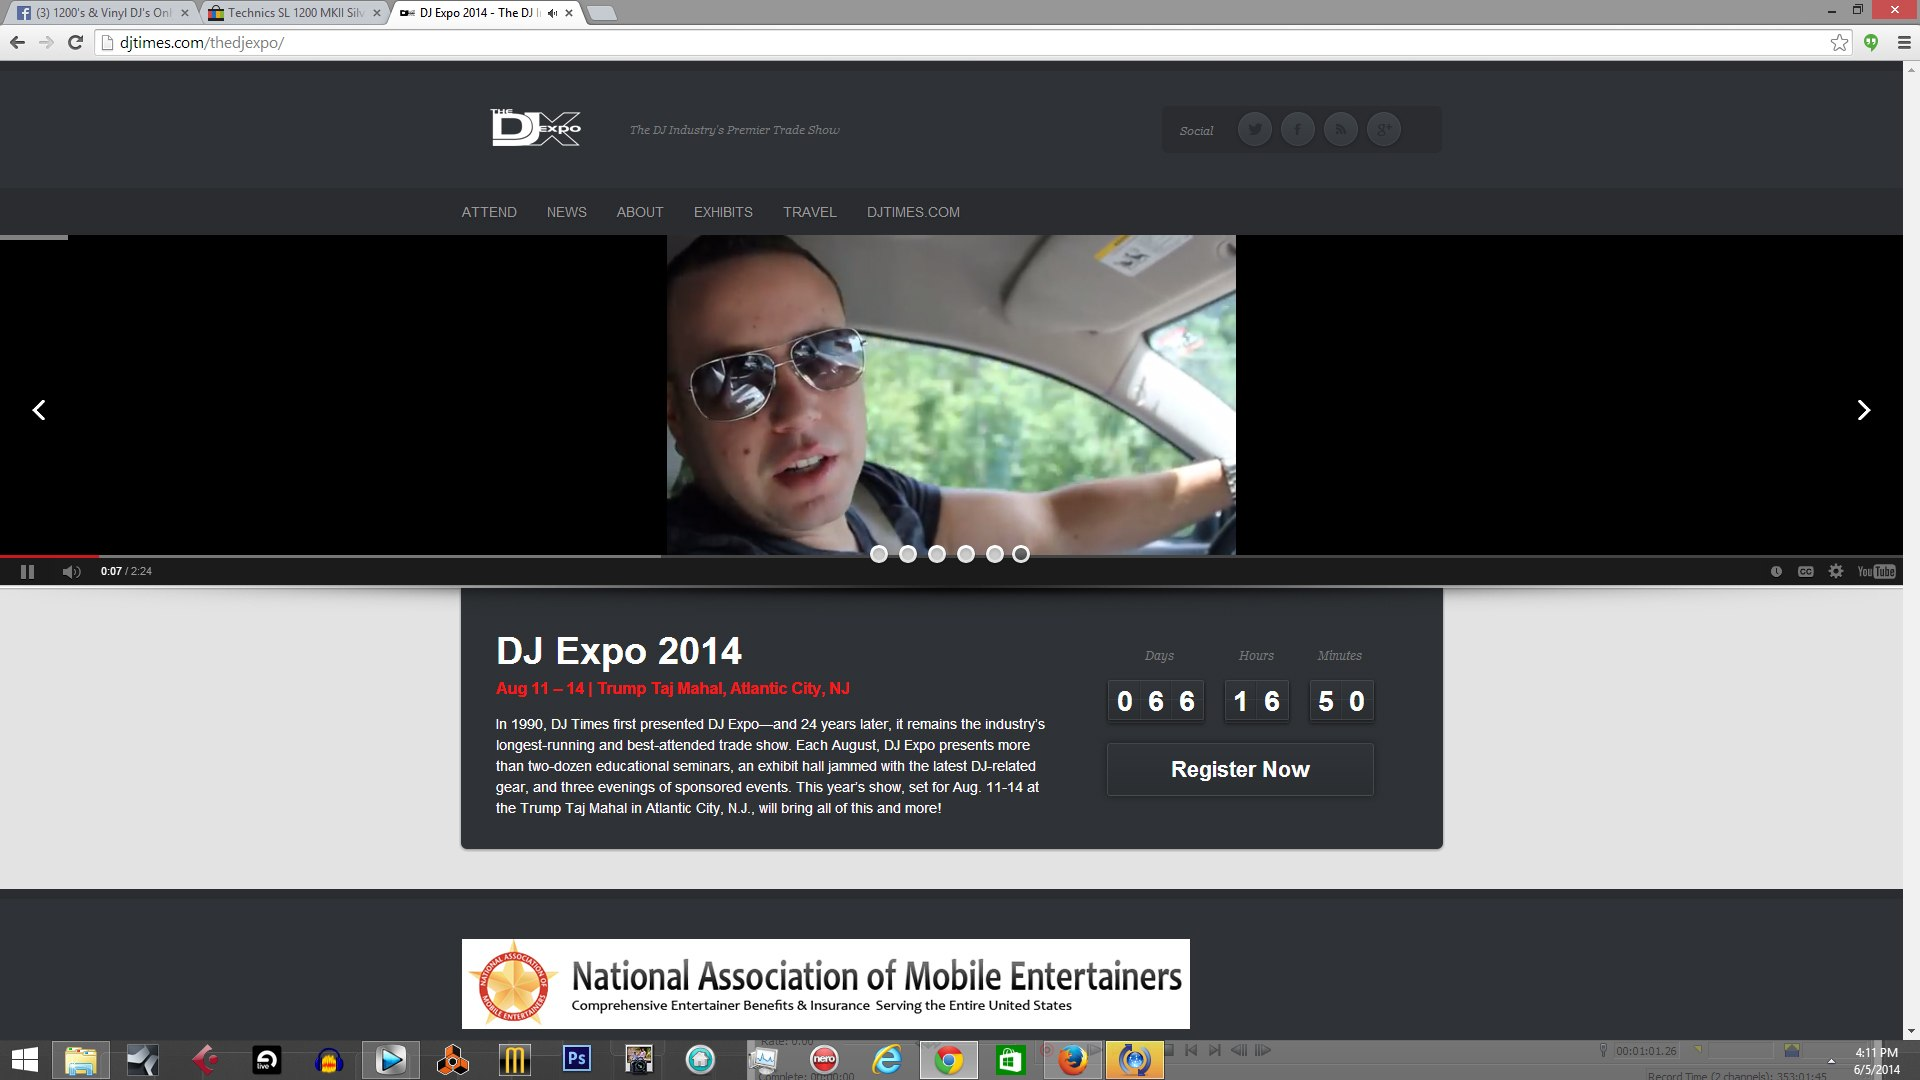 sojo_djtimes_dj_expo_taj mahal _atlantic city _doac_best djs_american dj _dj blog_senate djs_